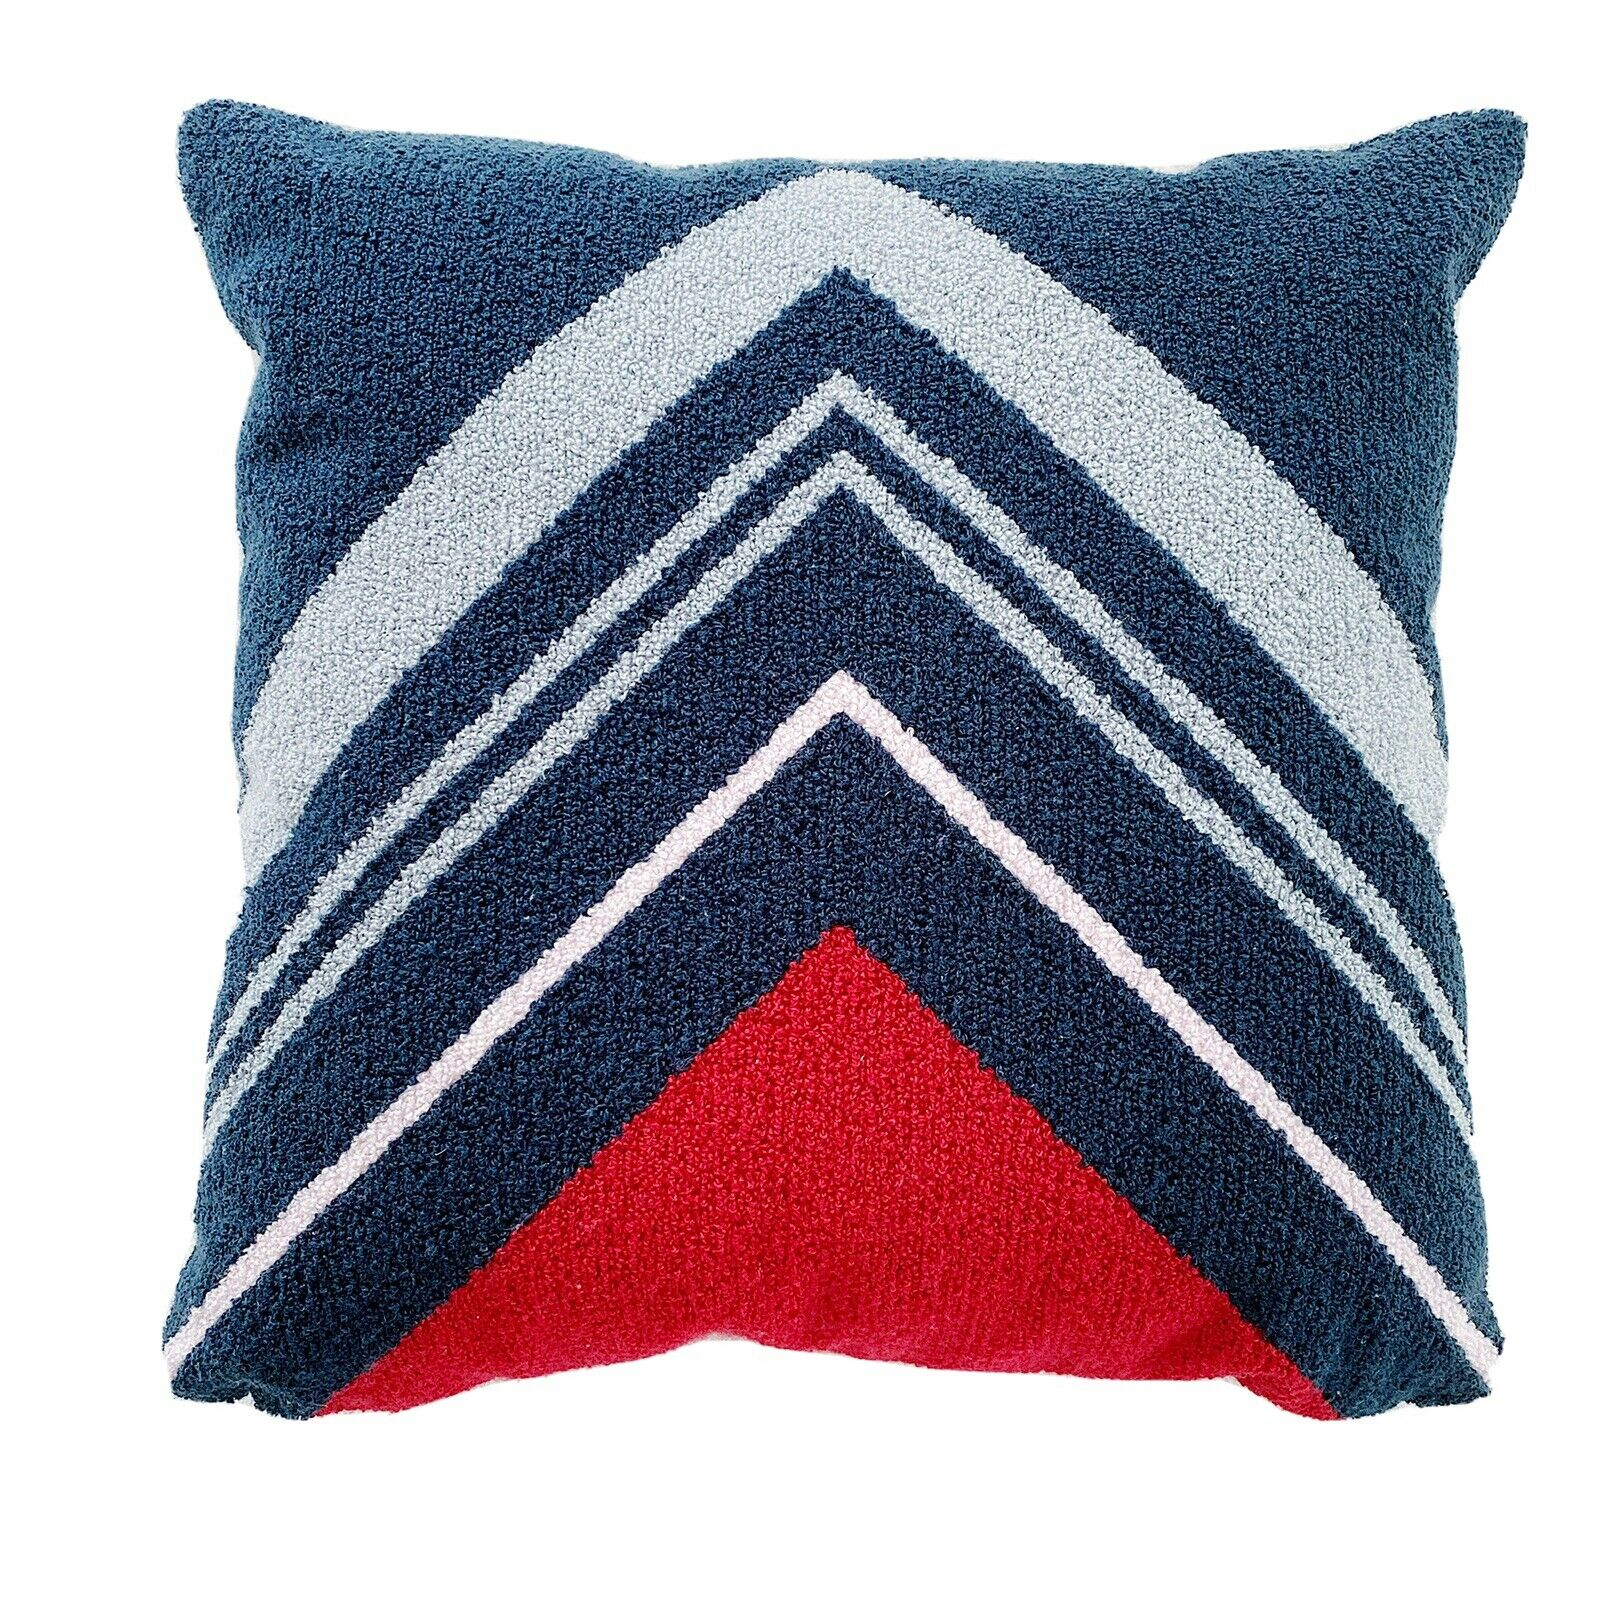 East Urban Home Blurred Out Throw Pillow Dahg9260 For Sale Online Ebay